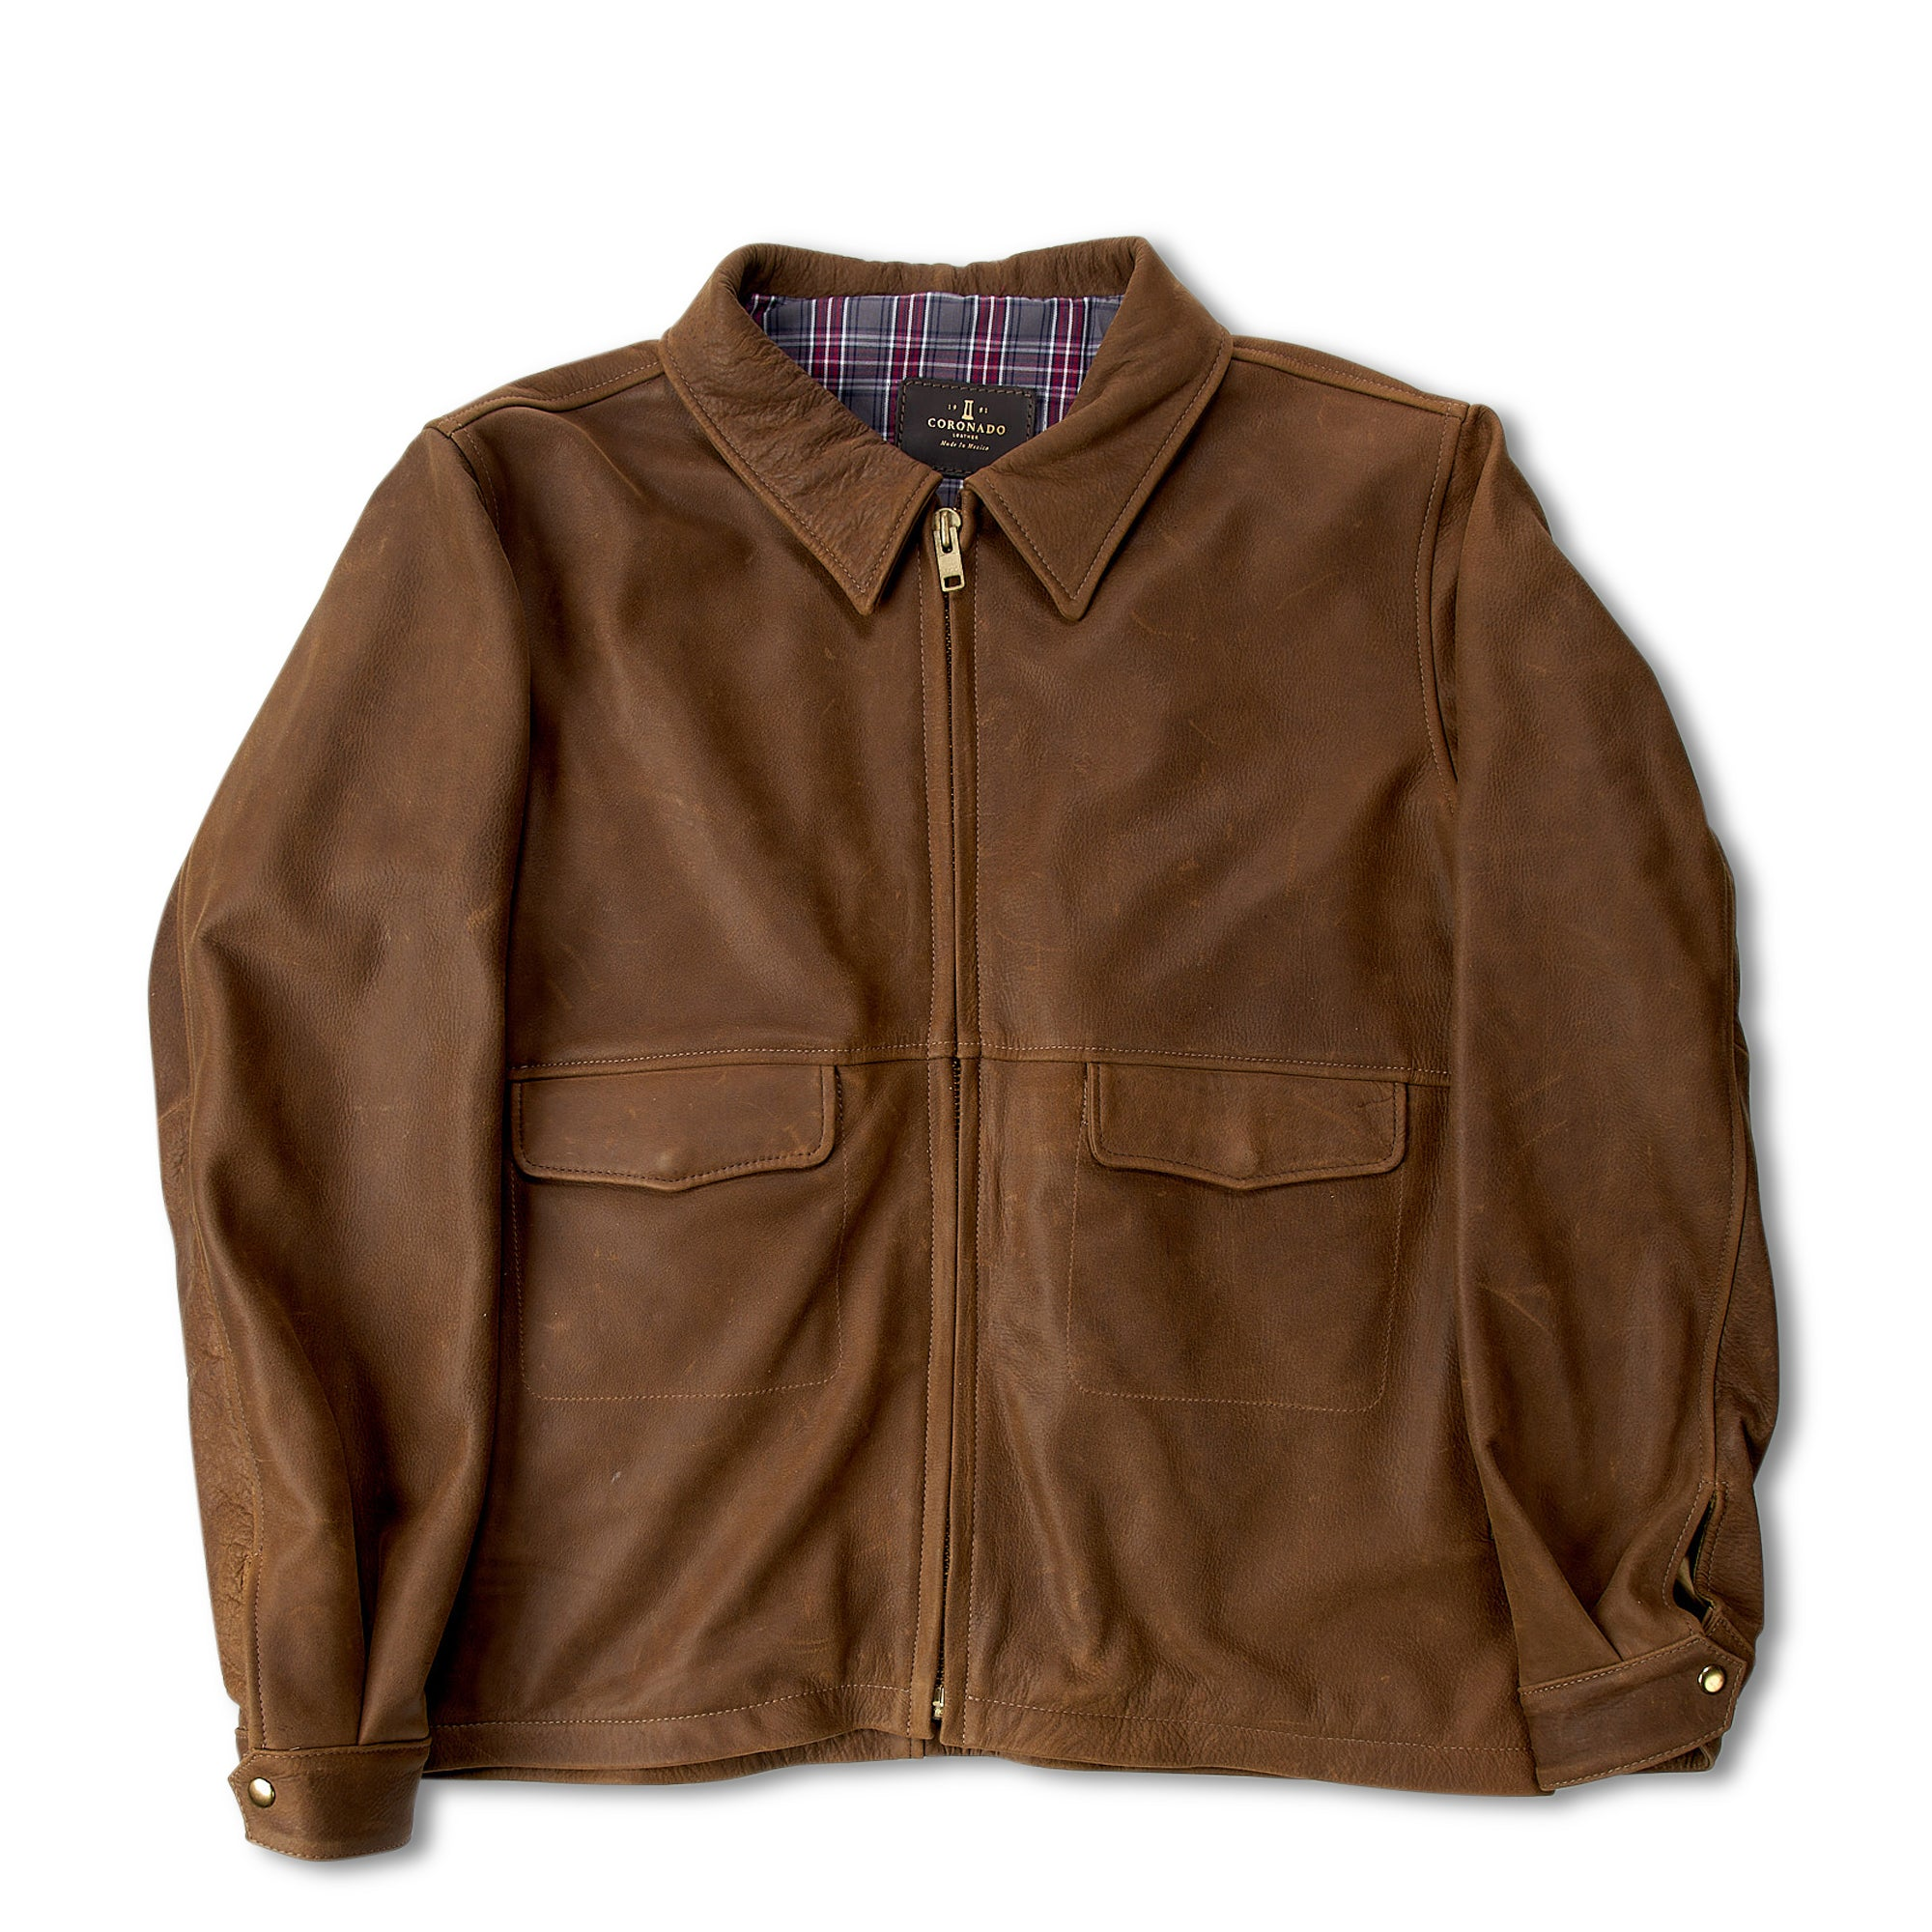 Classic CCW Jackets | Factory Samples & Specials